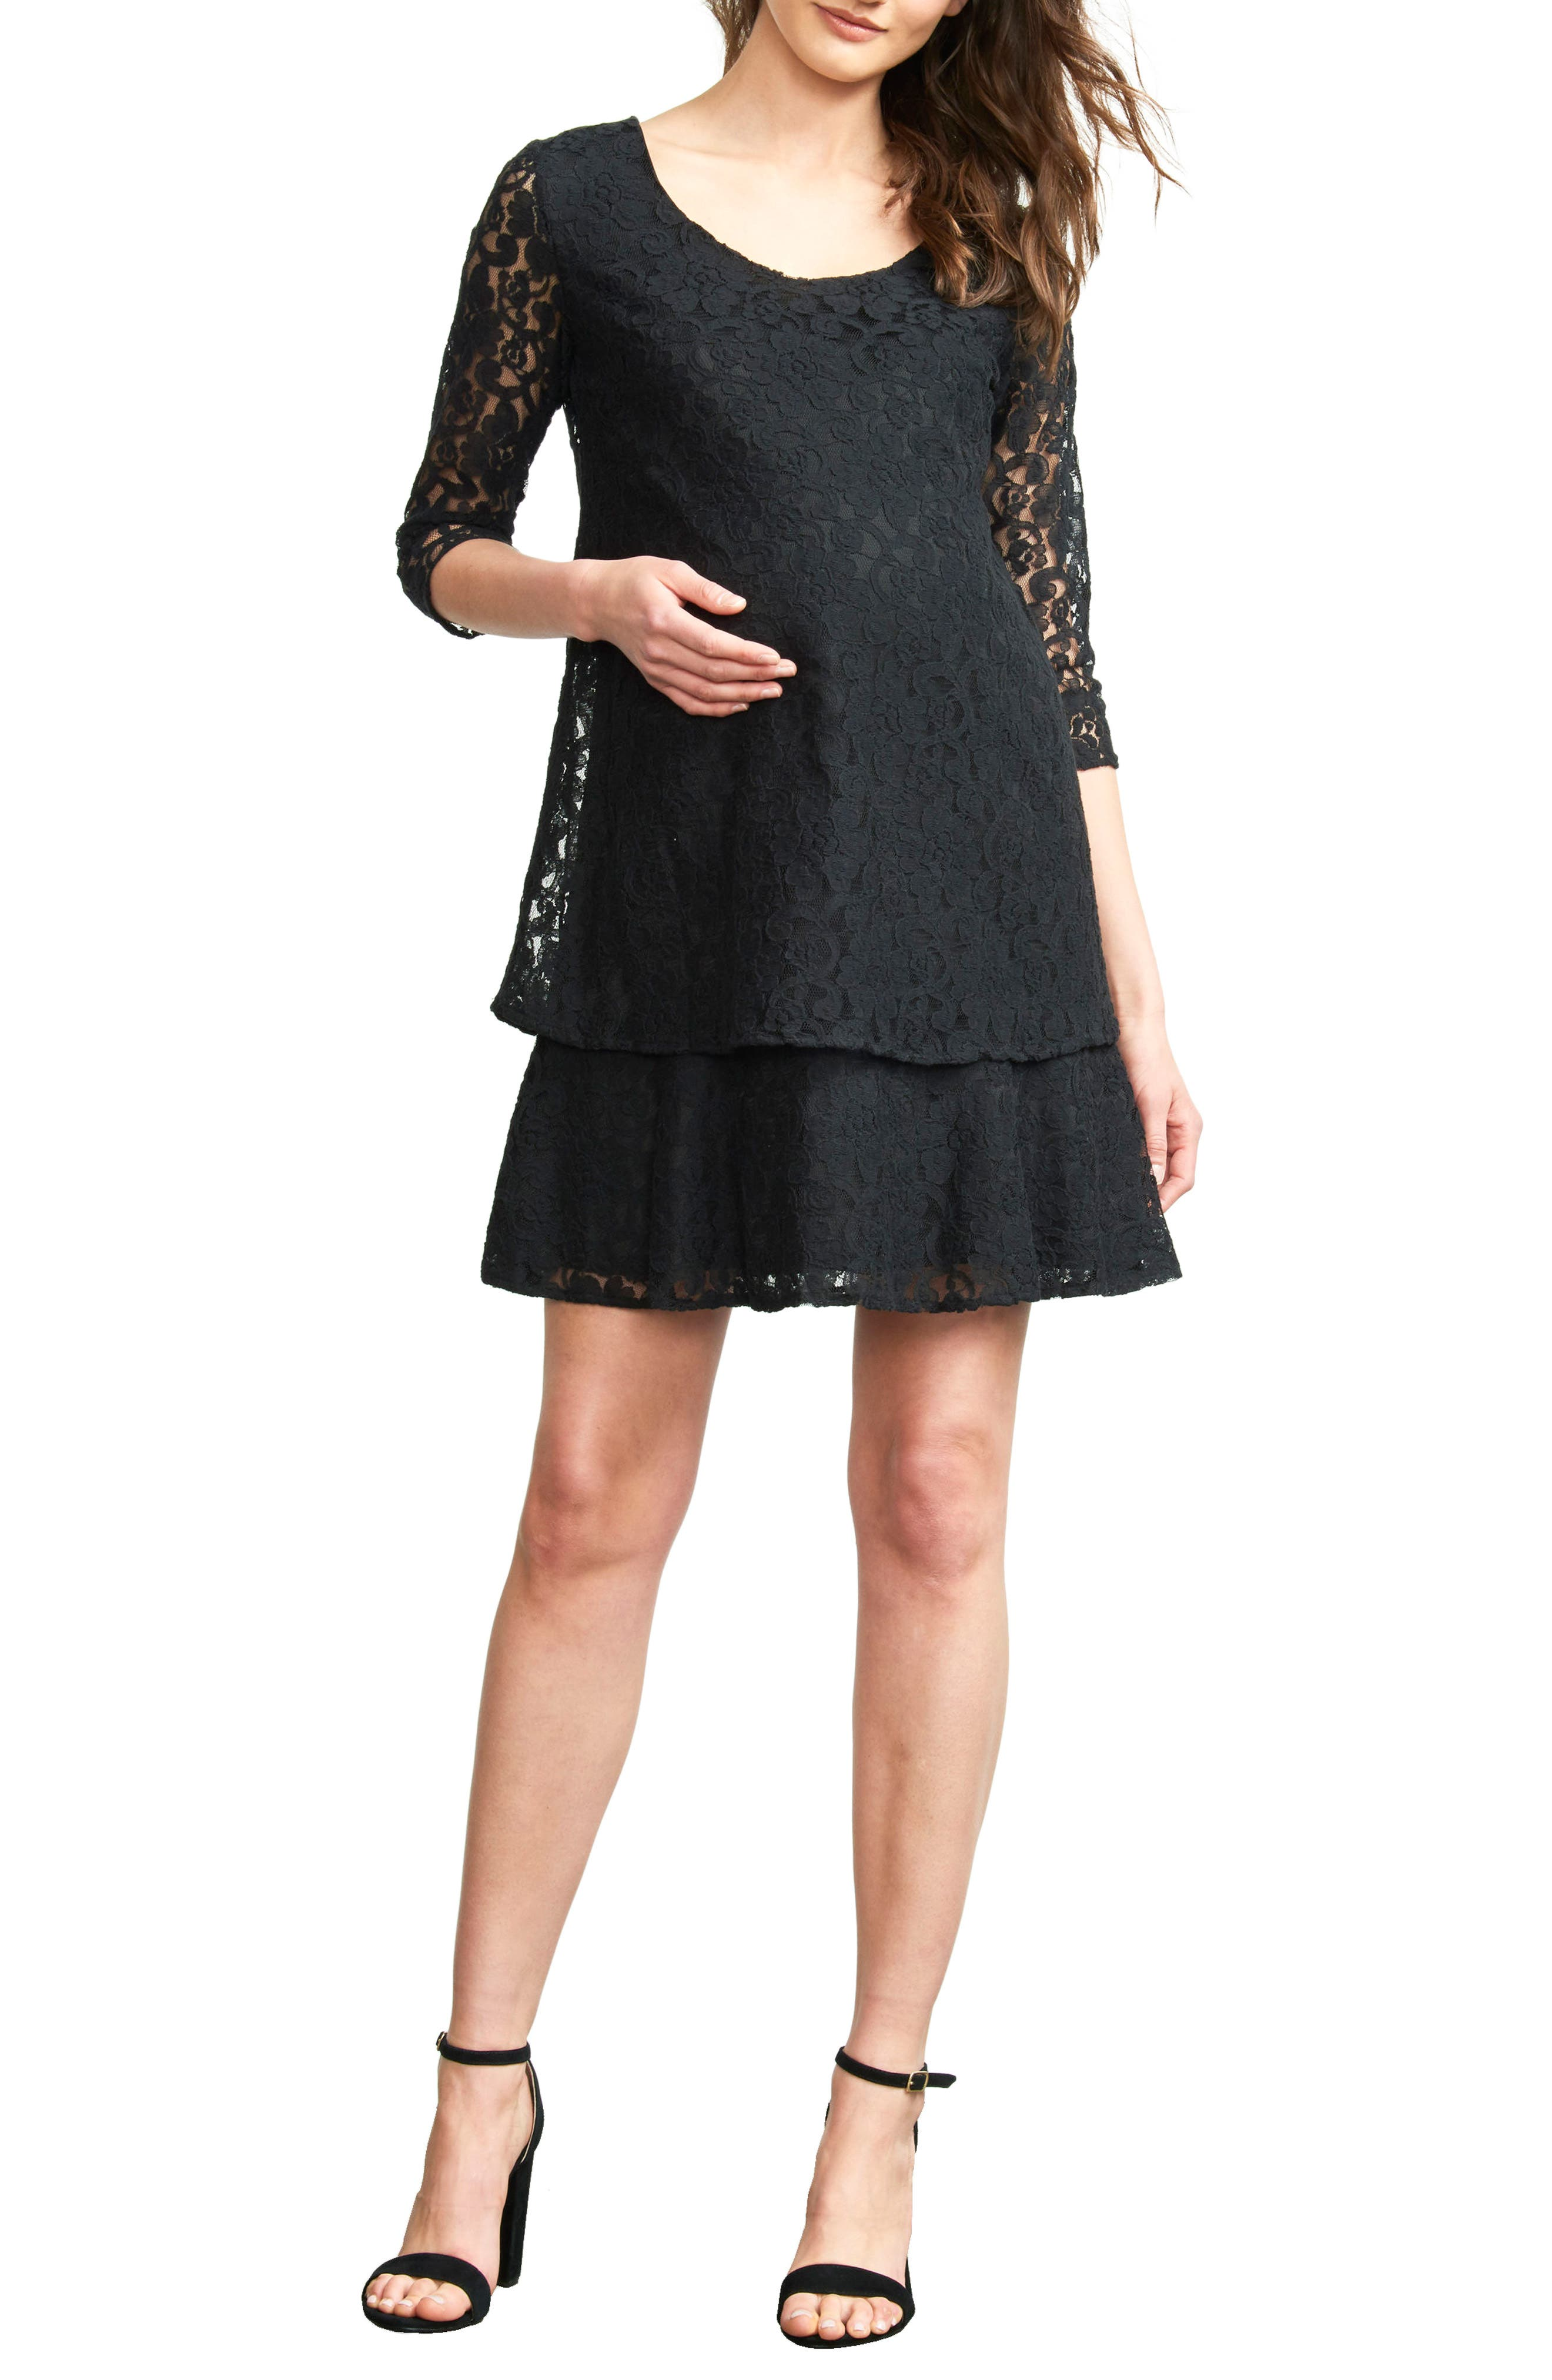 Tiered Lace Maternity Dress,                             Main thumbnail 1, color,                             BLACK LACE